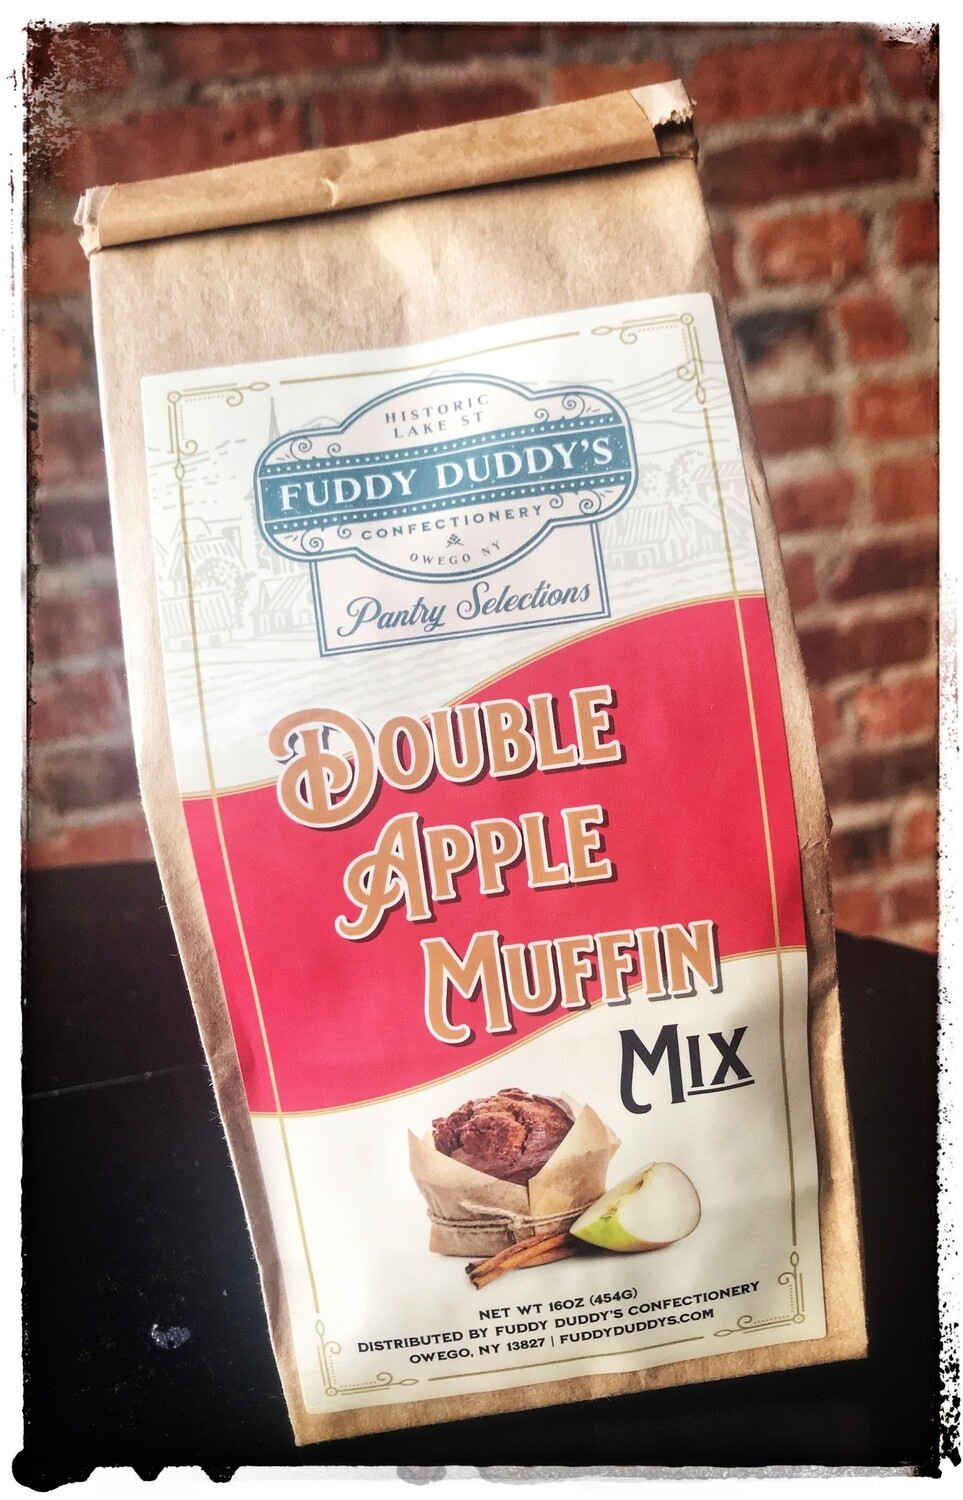 Fuddy Duddy's Double Apple Muffin Mix